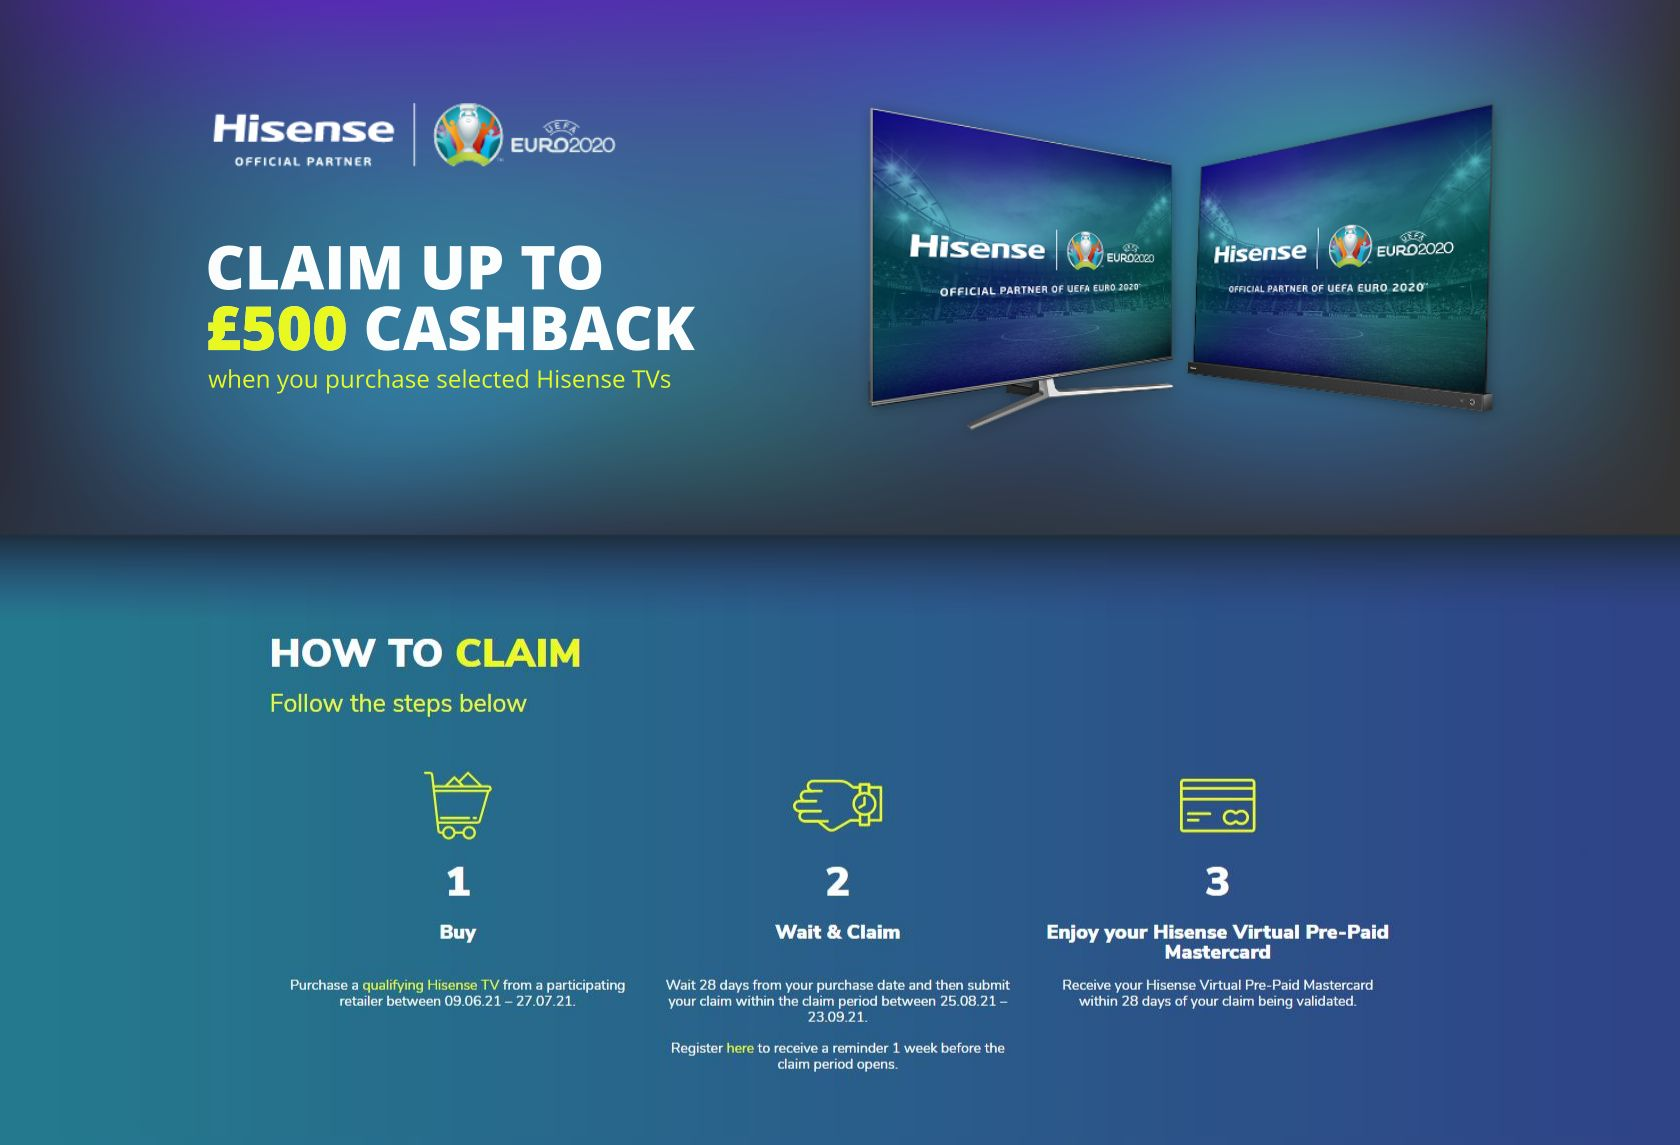 Claim up to £500 Cashback with selected Hisense TVs